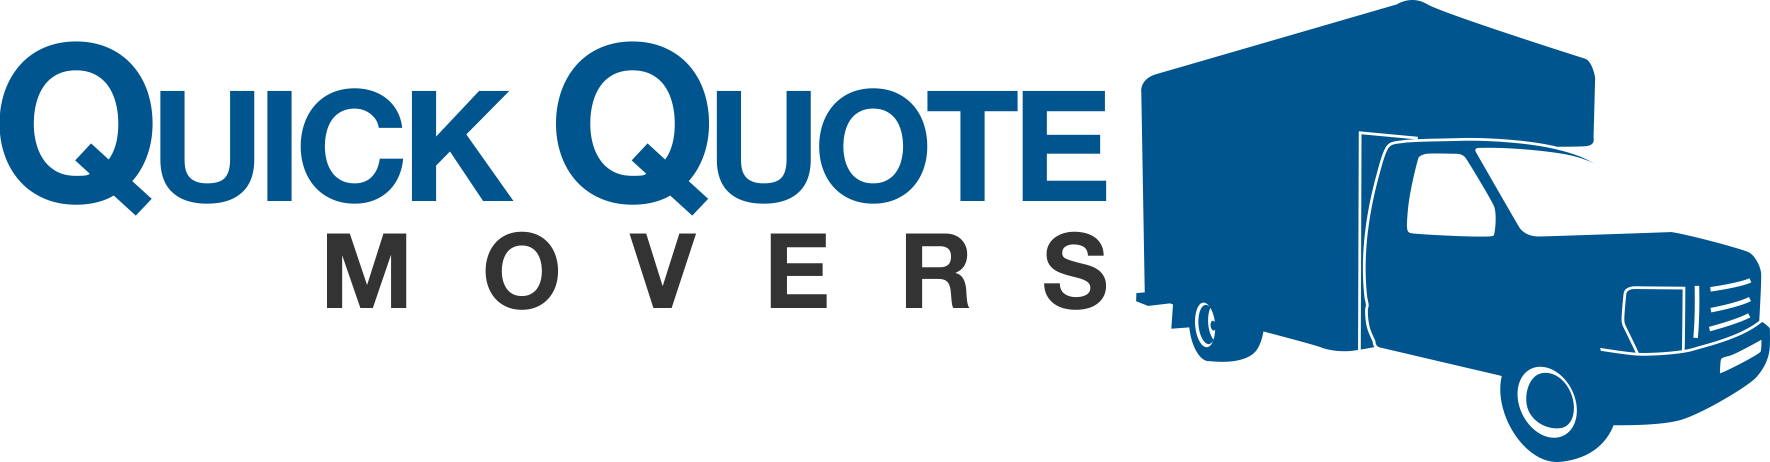 Movers Quote Quick Quote Movers  Greenville Sc Movers